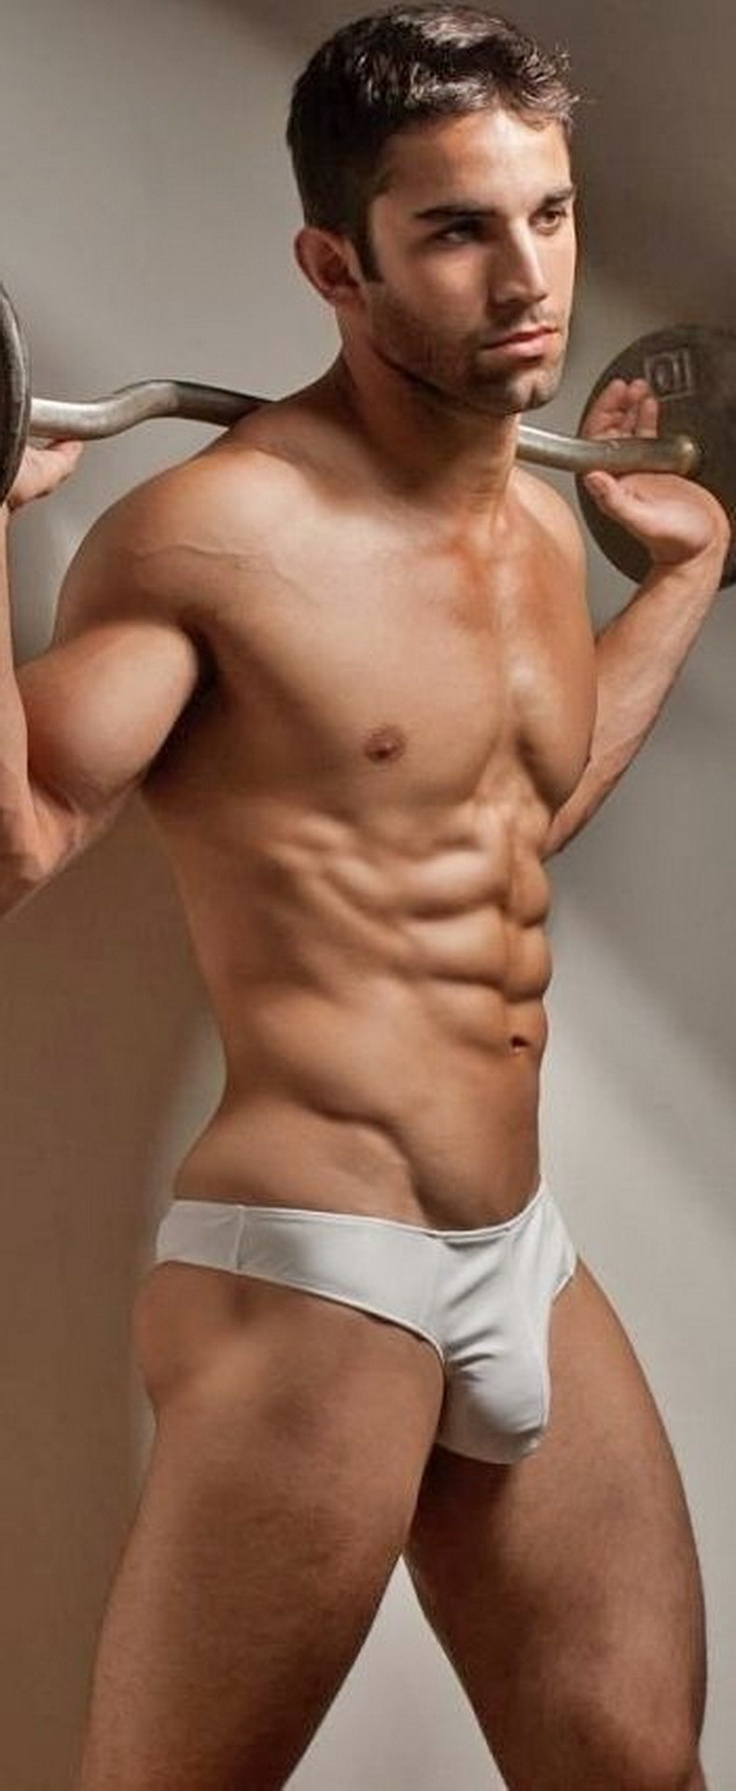 Topless hot guy putting his pants in